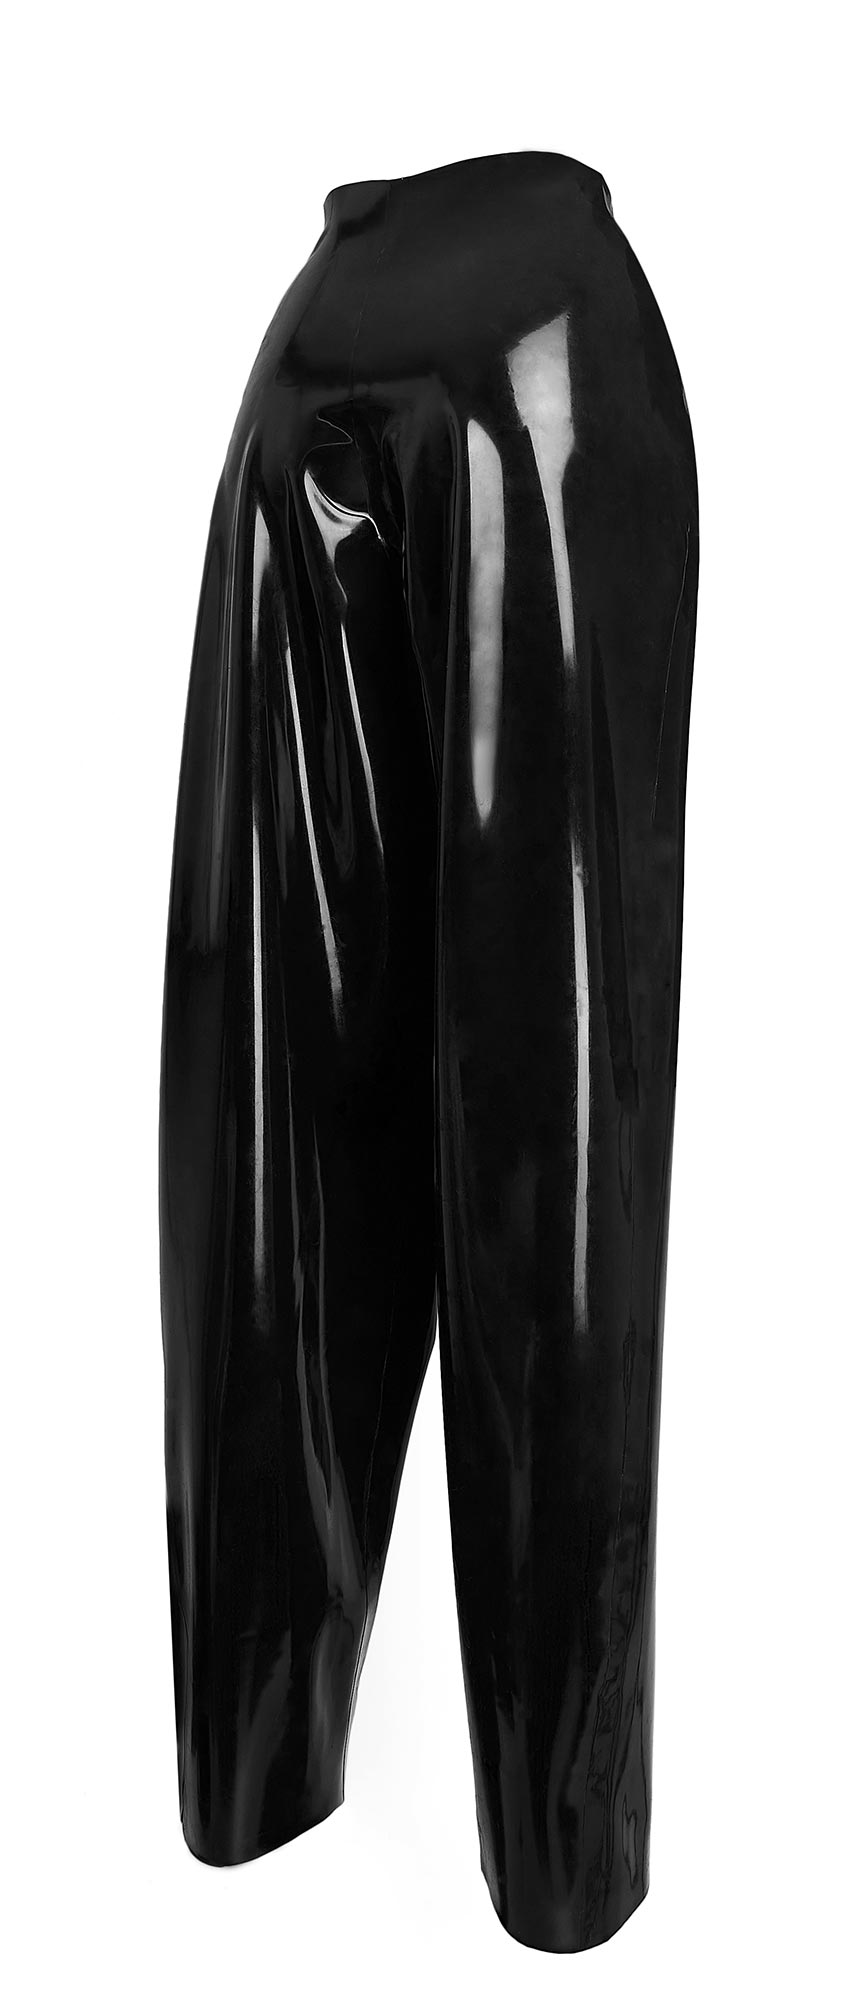 High-waisted black latex trousers, with pleated detail.